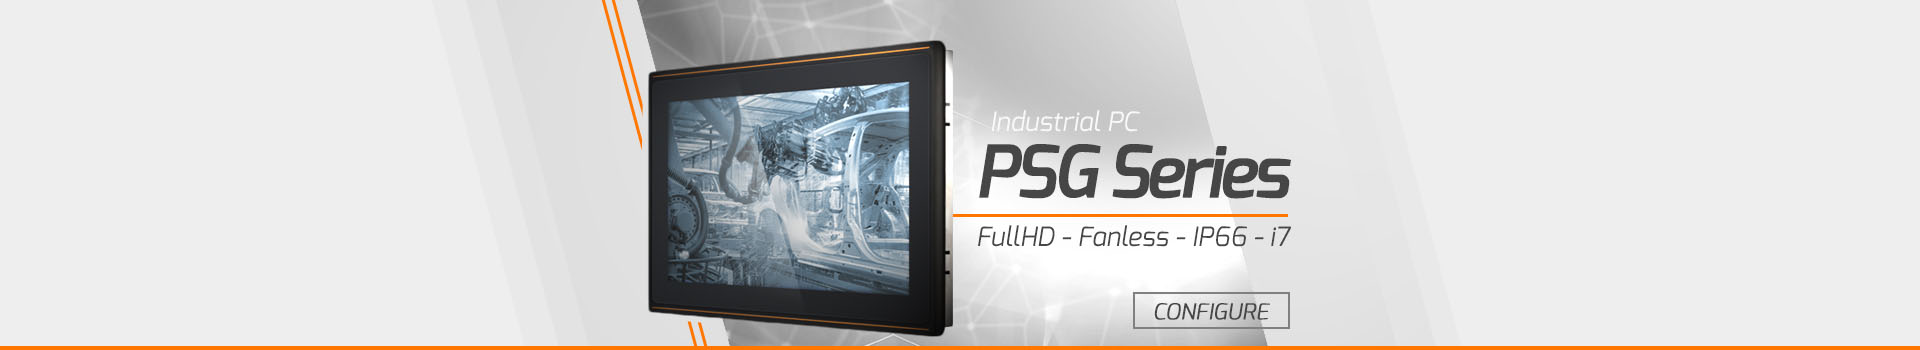 Industrial Panel PC - PSG Series